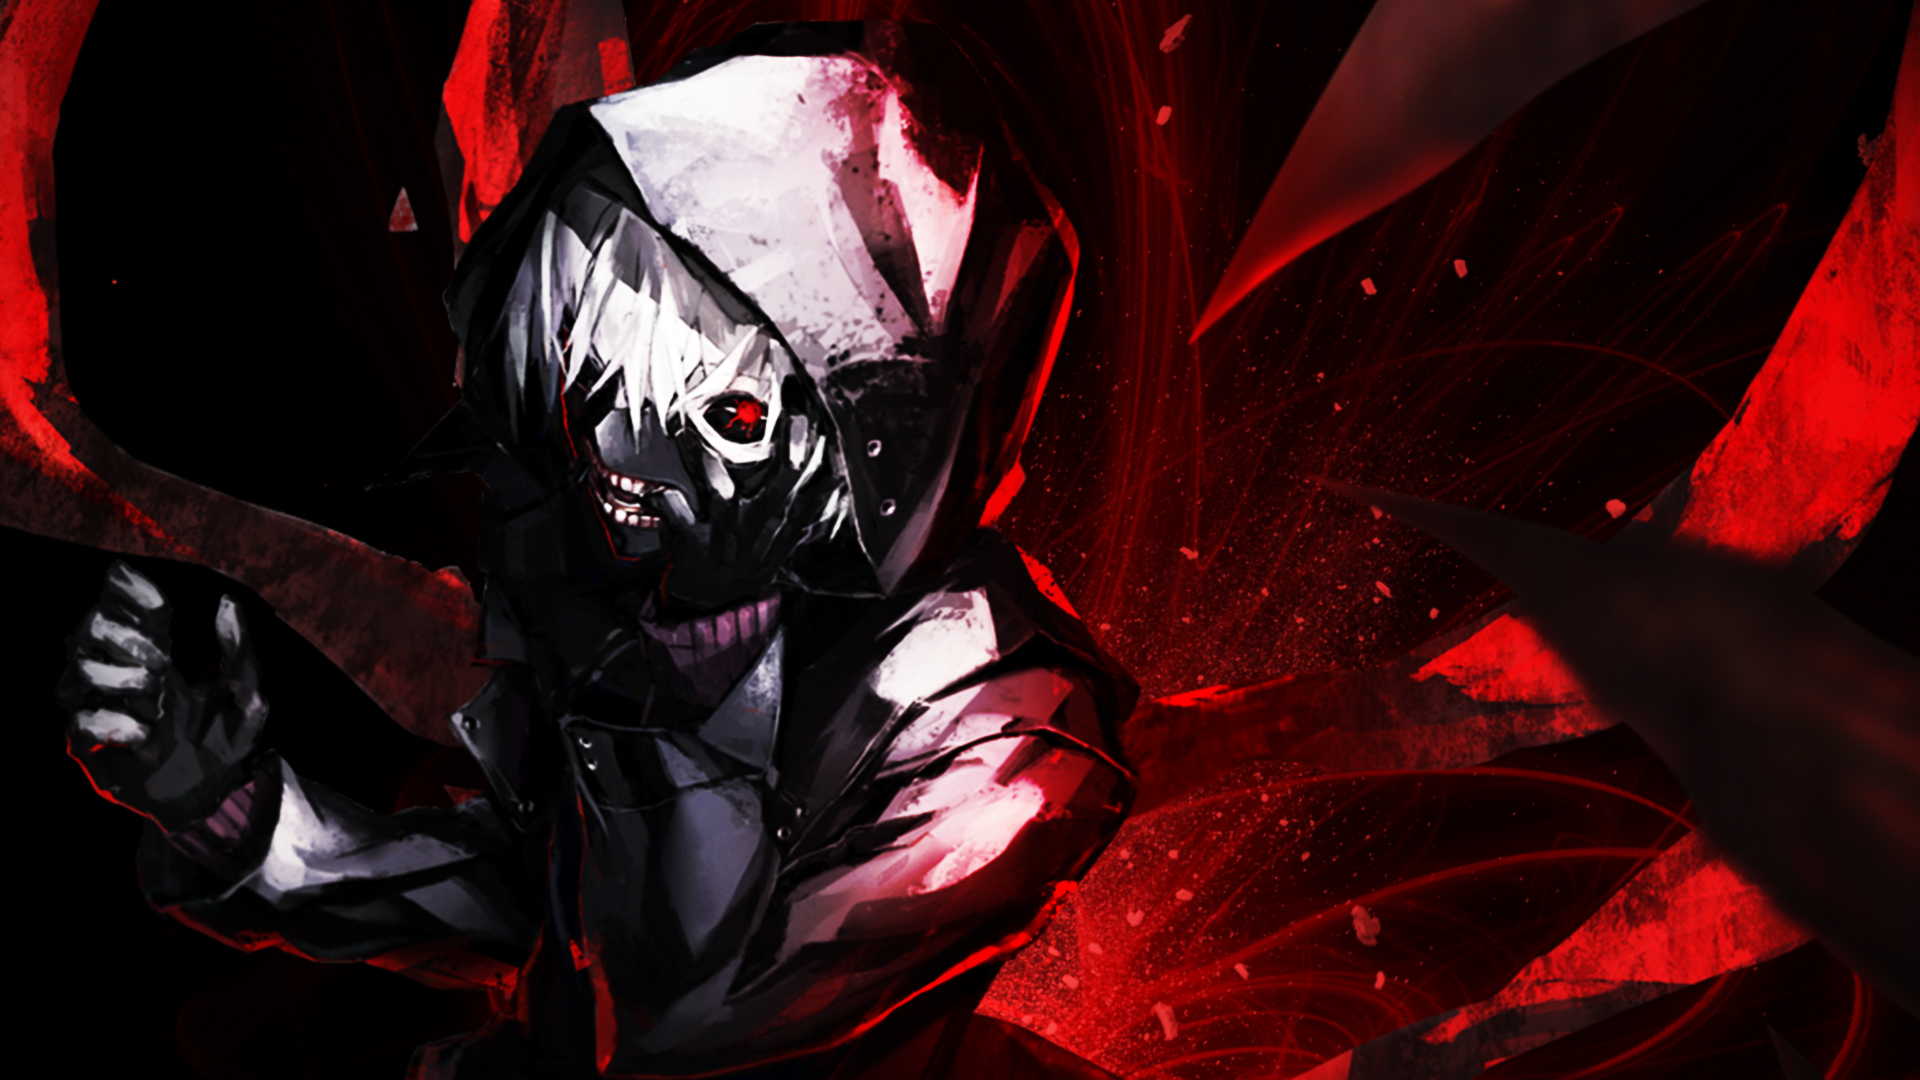 Hd Wallpaper Kaneki Full Hd Fond D 233 Cran And Arri 232 Re Plan 1920x1080